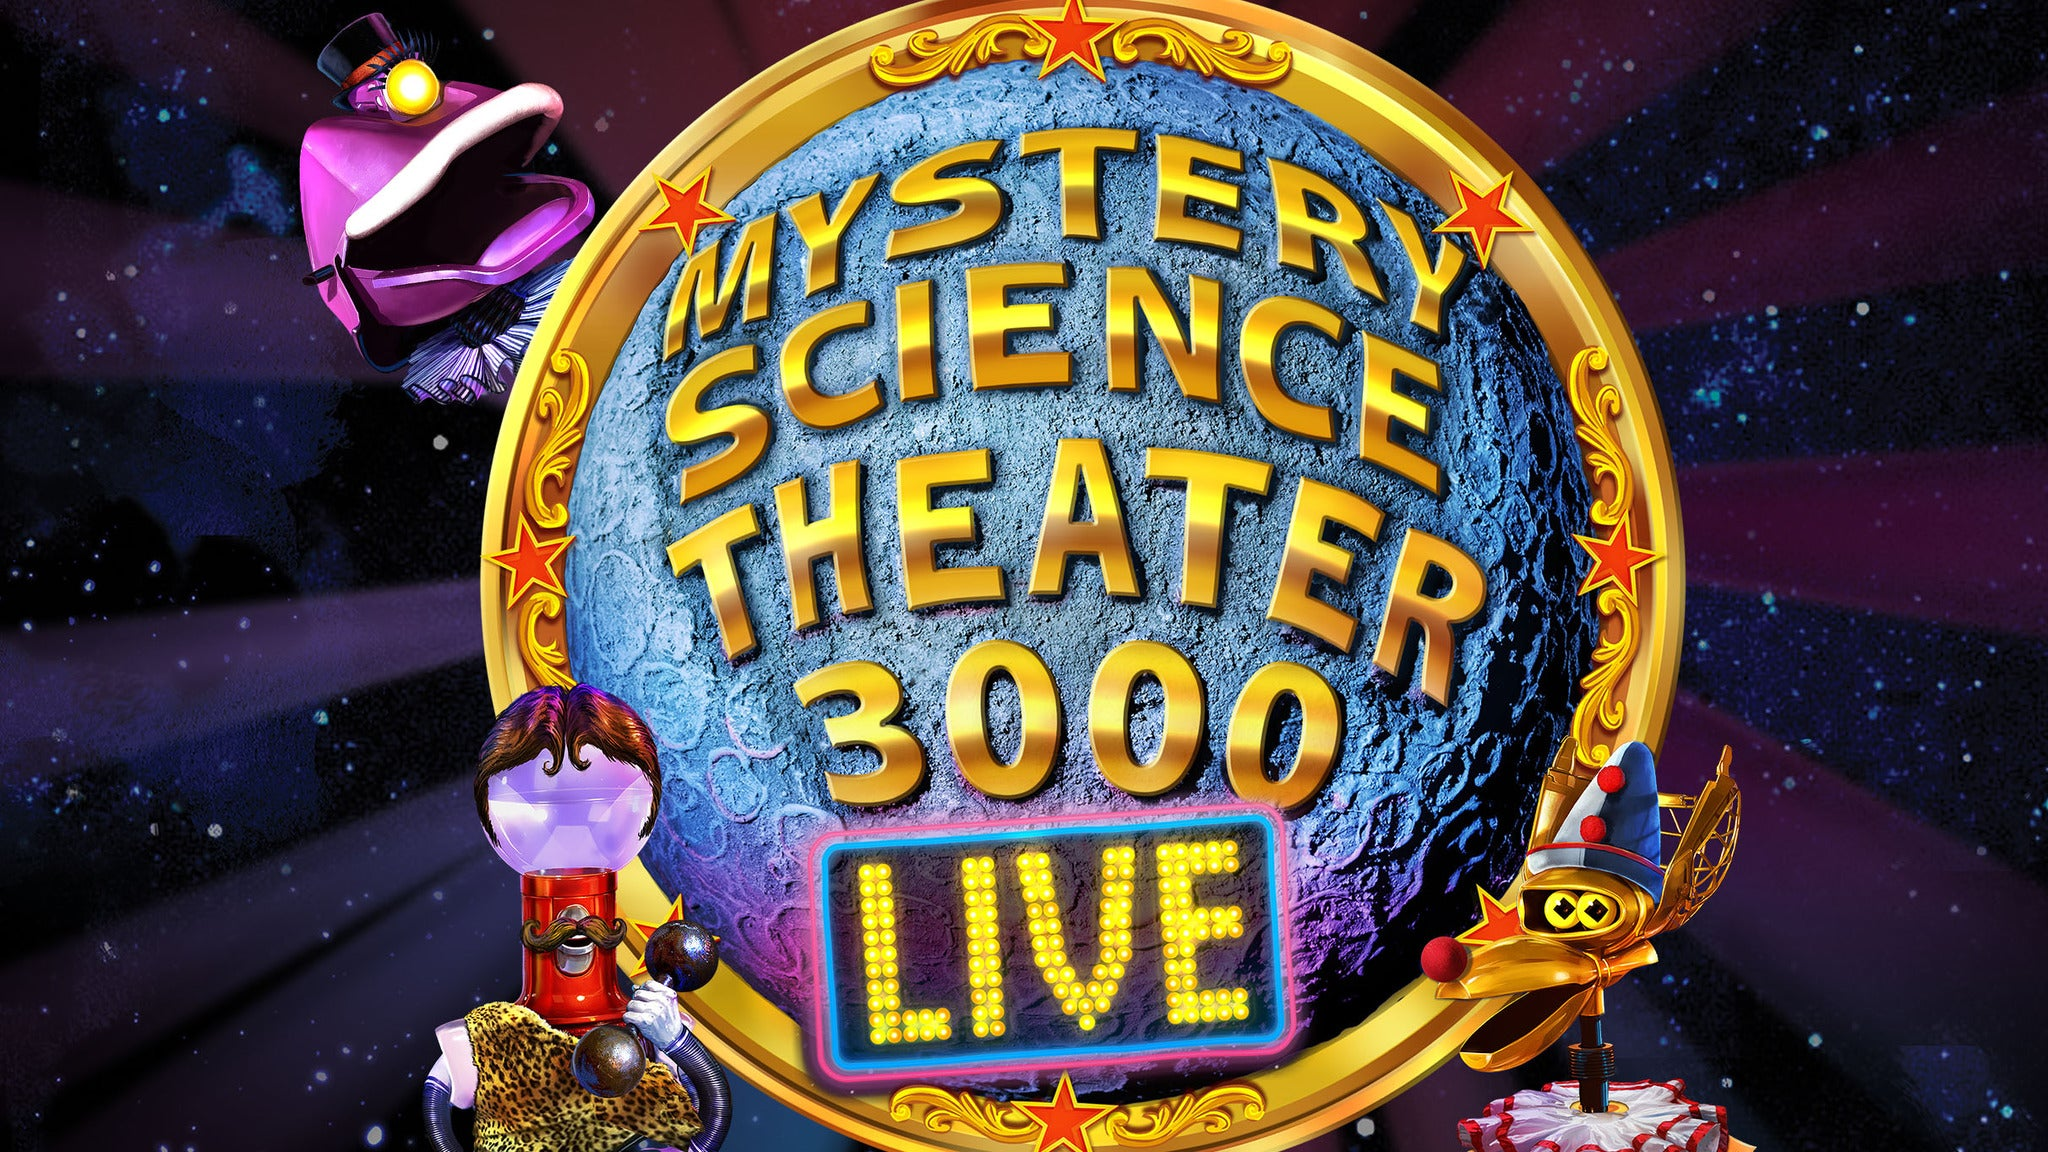 Mystery Science Theater 3000 at Paramount Theatre-Austin